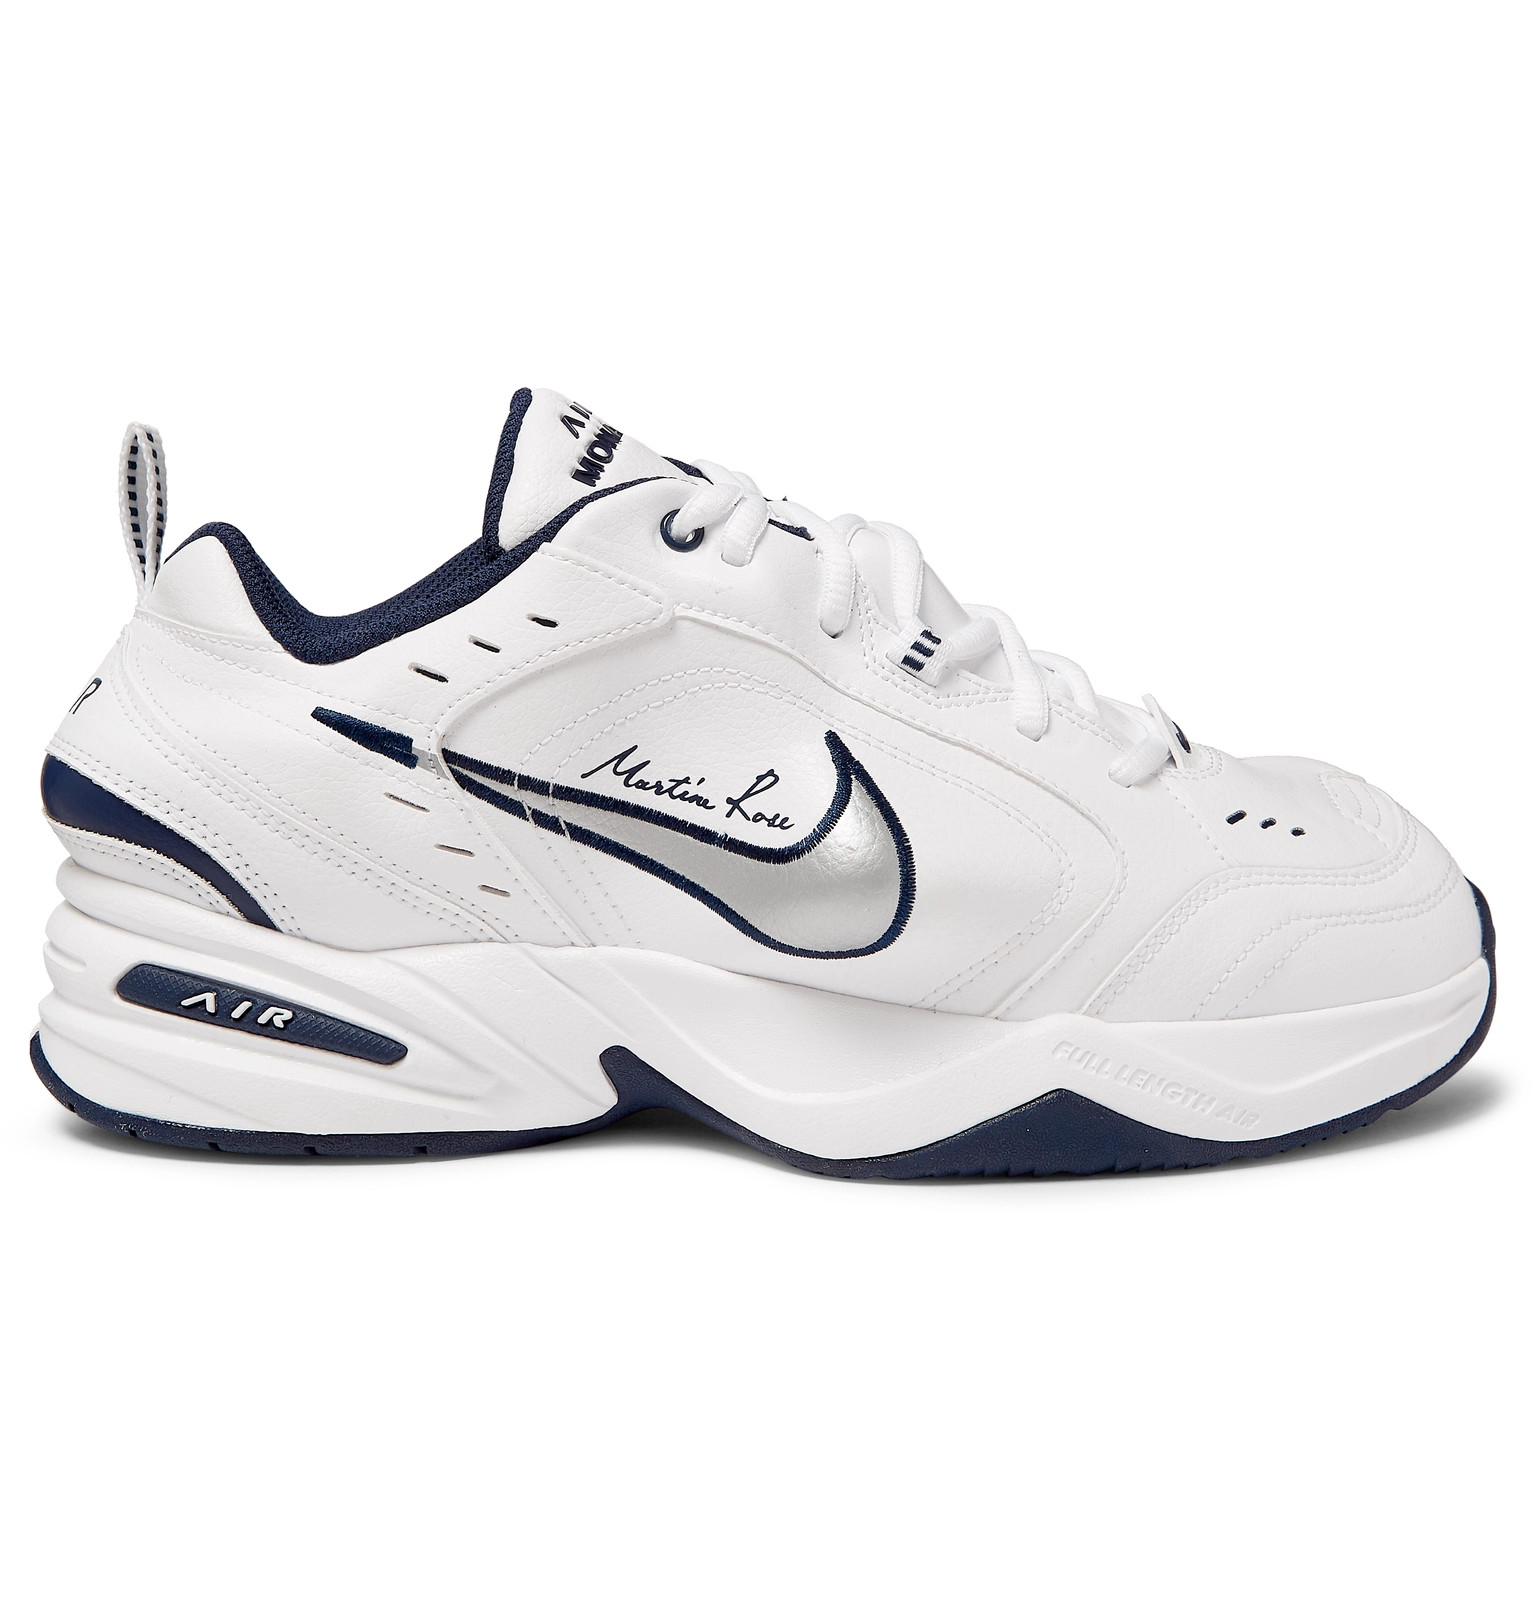 Nike - + Martine Rose Air Monarch IV Faux Leather Sneakers 12b7ded76